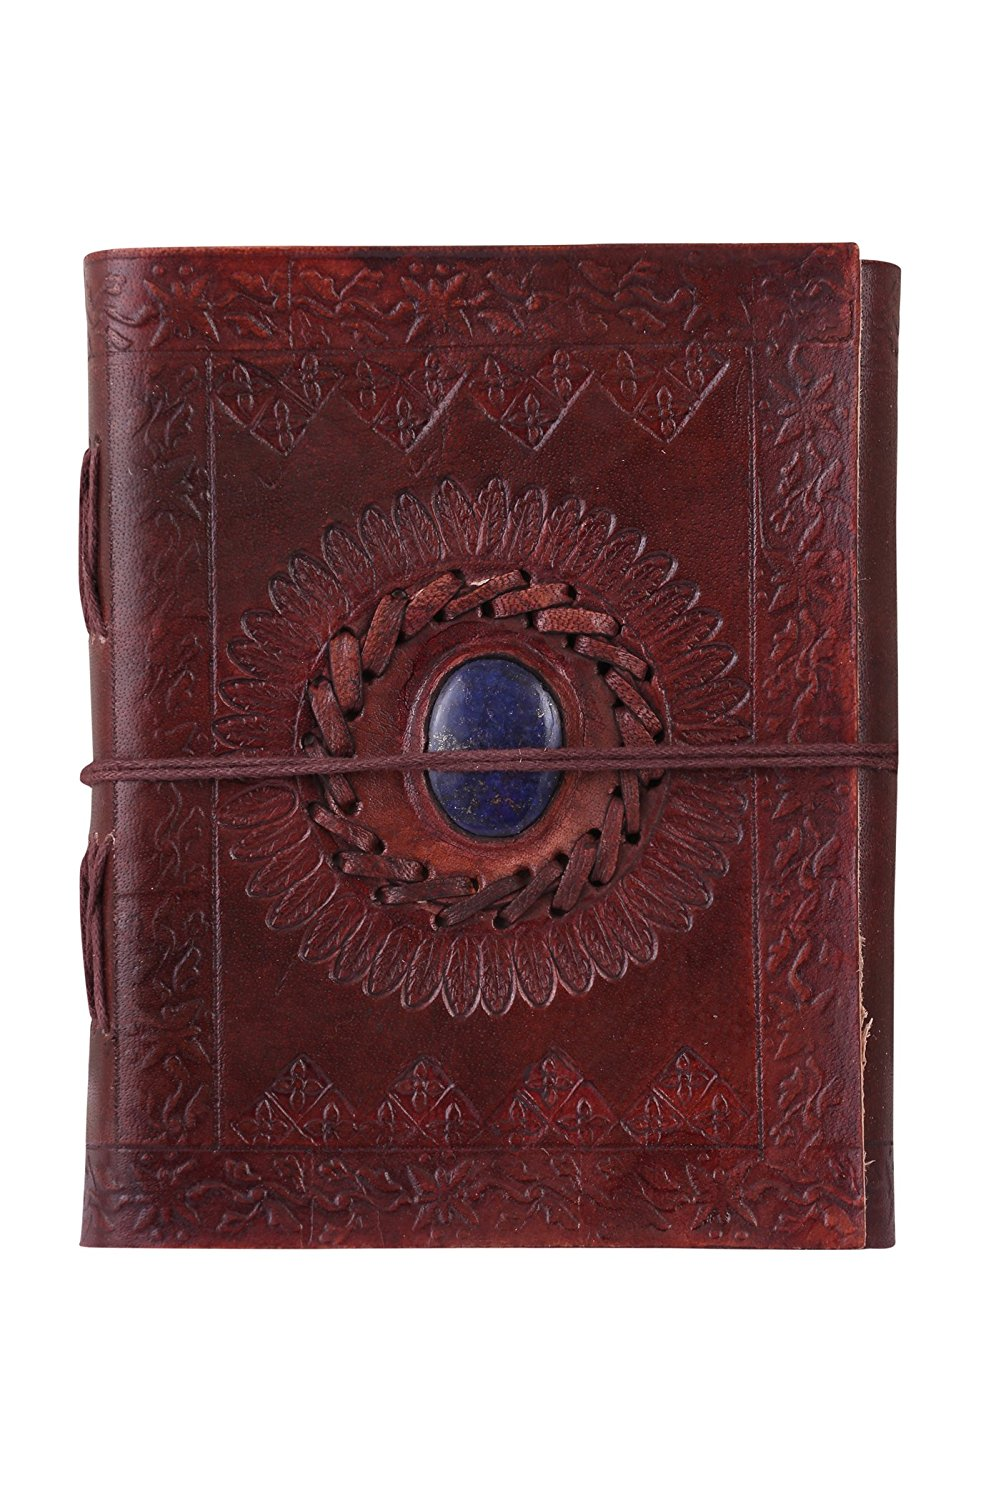 ALBORZ Handmade Genuine Leather Embossed Stone Travel Journal, Diary for Men and Women, Leather Bound Notebook, Best Gift for Art Sketchbook, Size 6 x 5 inches